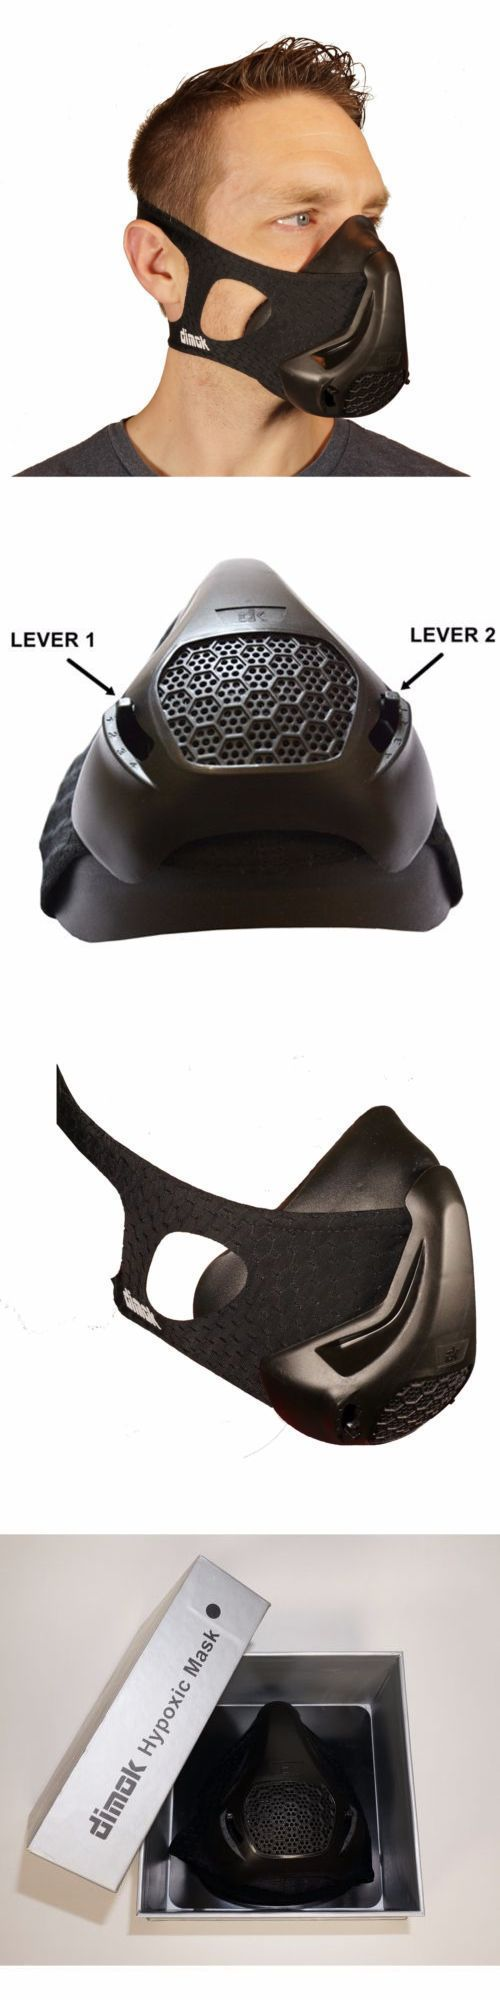 Elevation Training Masks 179787: Training Mask Exercise Equipment Mma Fitness Running High Altitude Workout New -> BUY IT NOW ONLY: $69.99 on eBay!